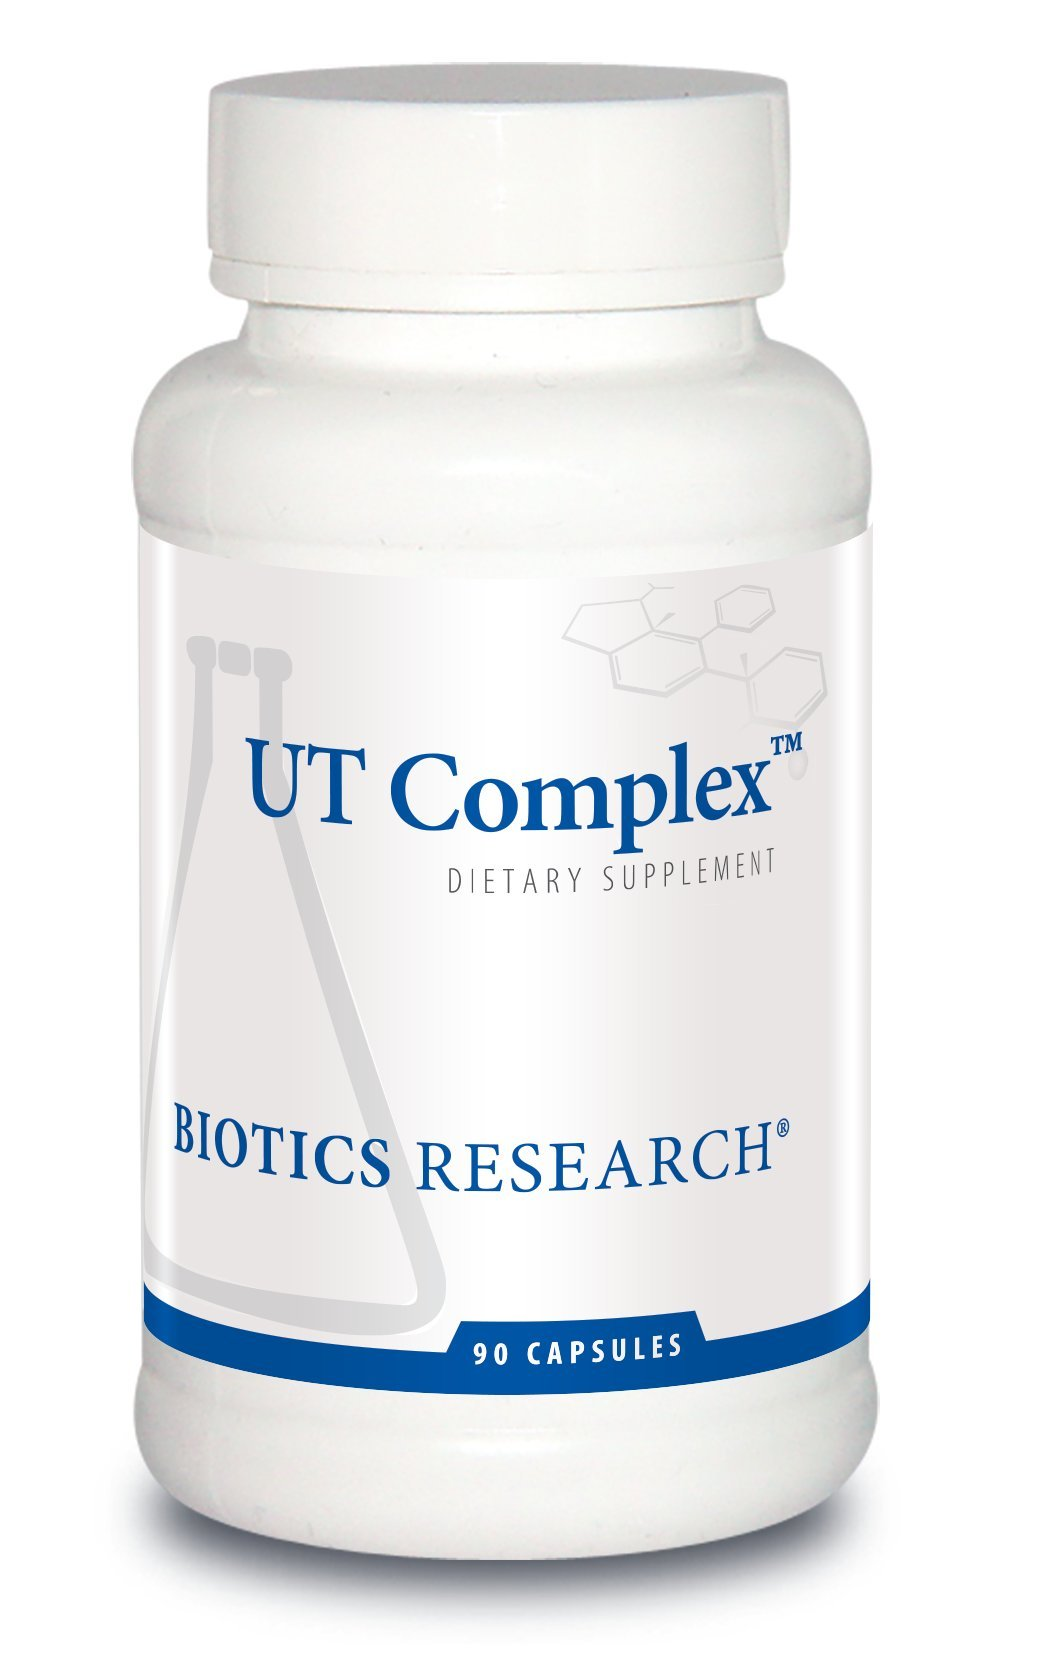 Biotics Research UT ComplexTM- Chrysanthemum, Couch Grass, Cornsilk, Zhu Ling and Buchu Extract, Urinary Tract Support, Kidney Function, Renal Health. 90 Capsules. by BIOTICS